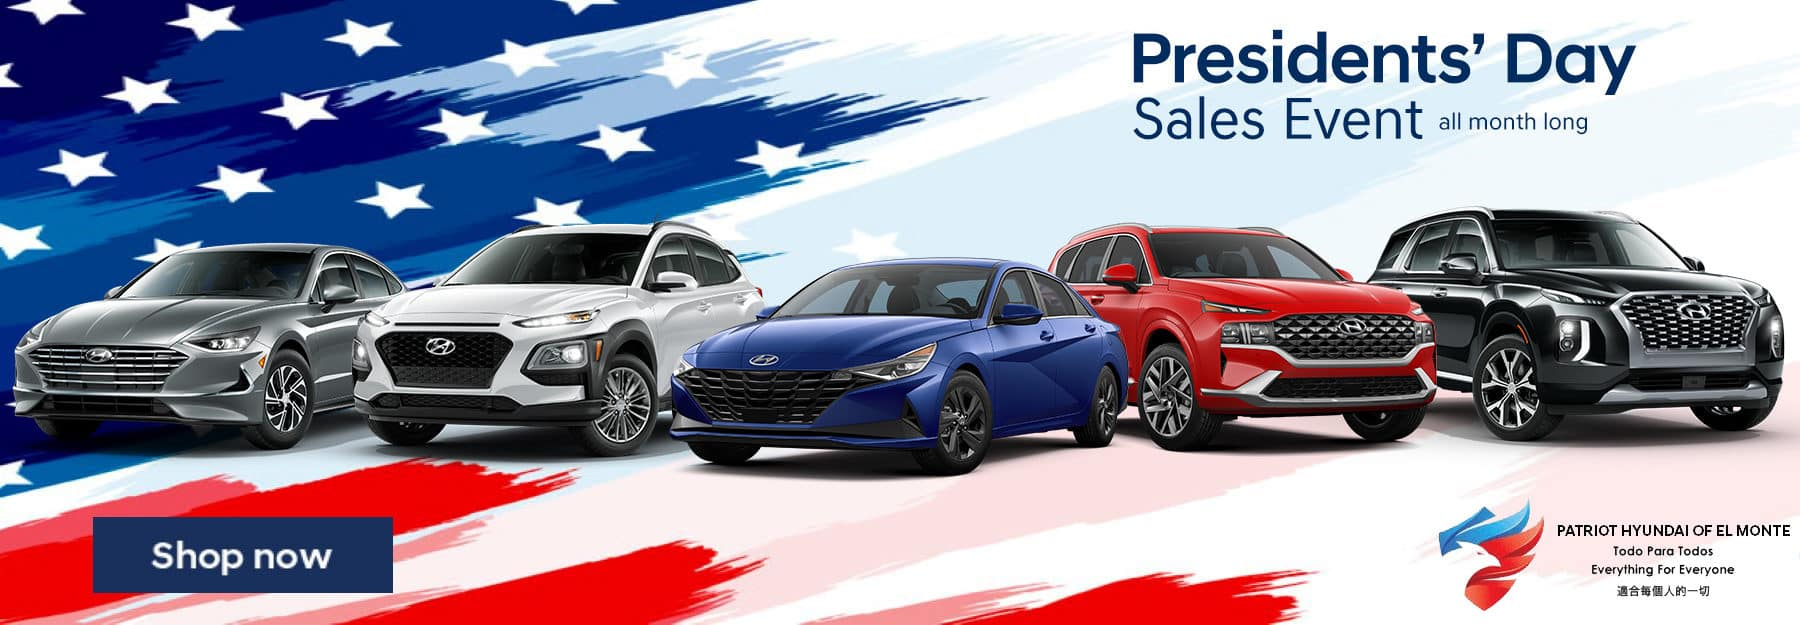 2021 Presidents' Day Sales Event